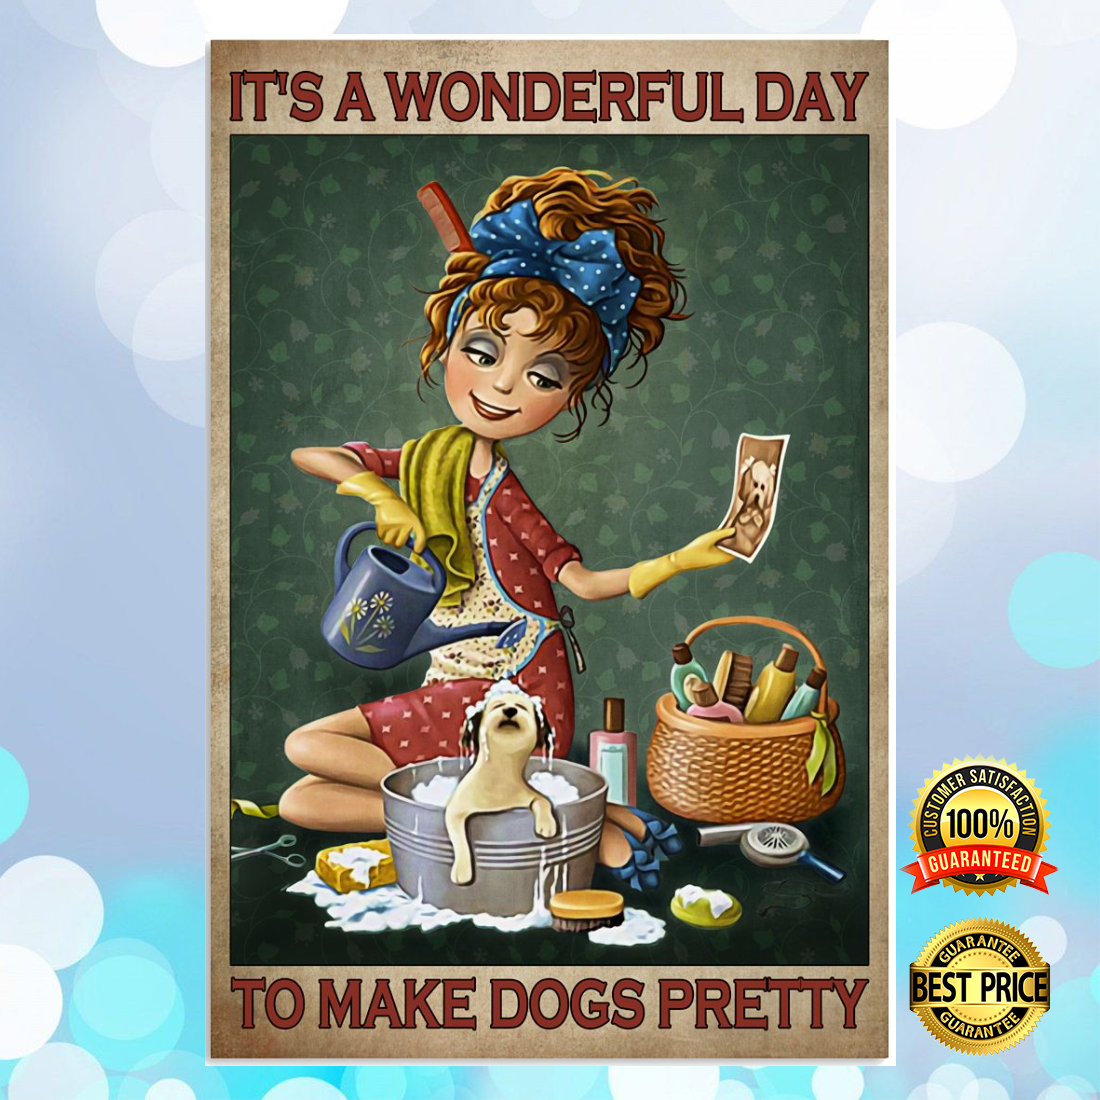 IT'S A WONDERFUL DAY TO MAKE DOGS PRETTY POSTER 5